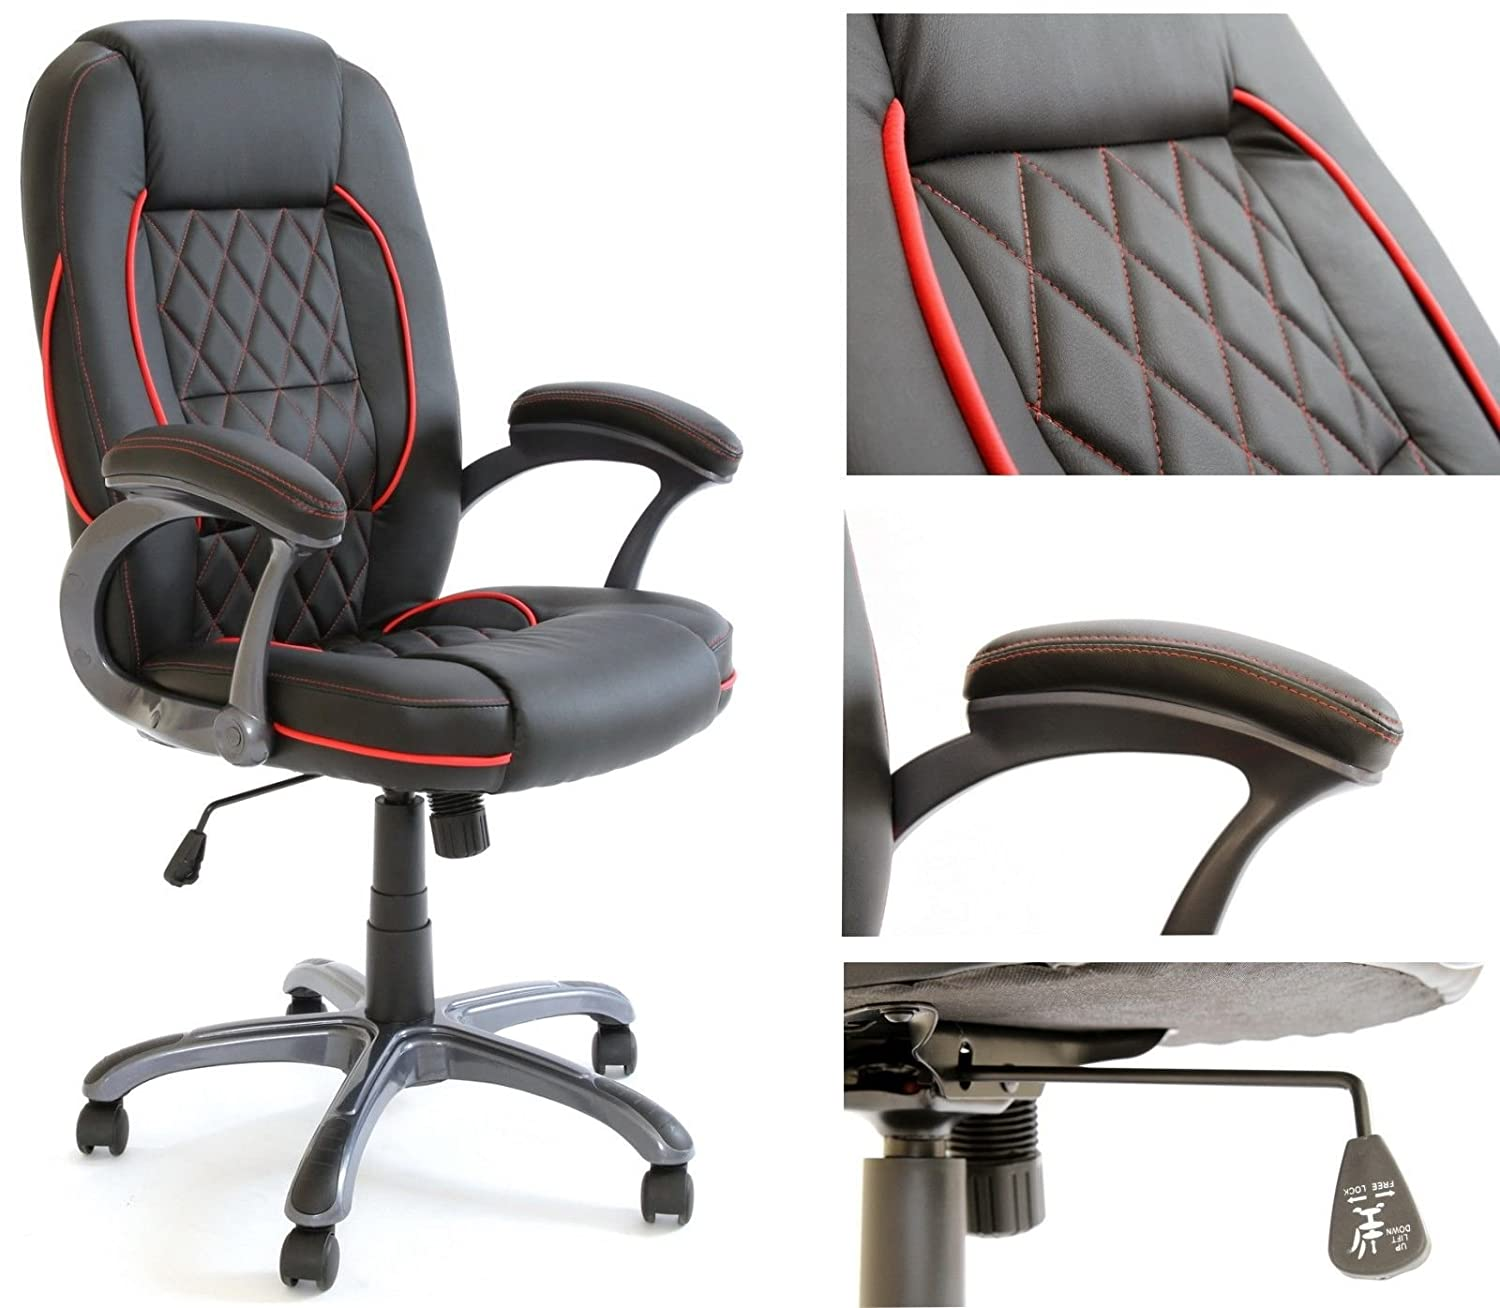 Charles Jacobs Executive fice CHAIR in Black High Back Business